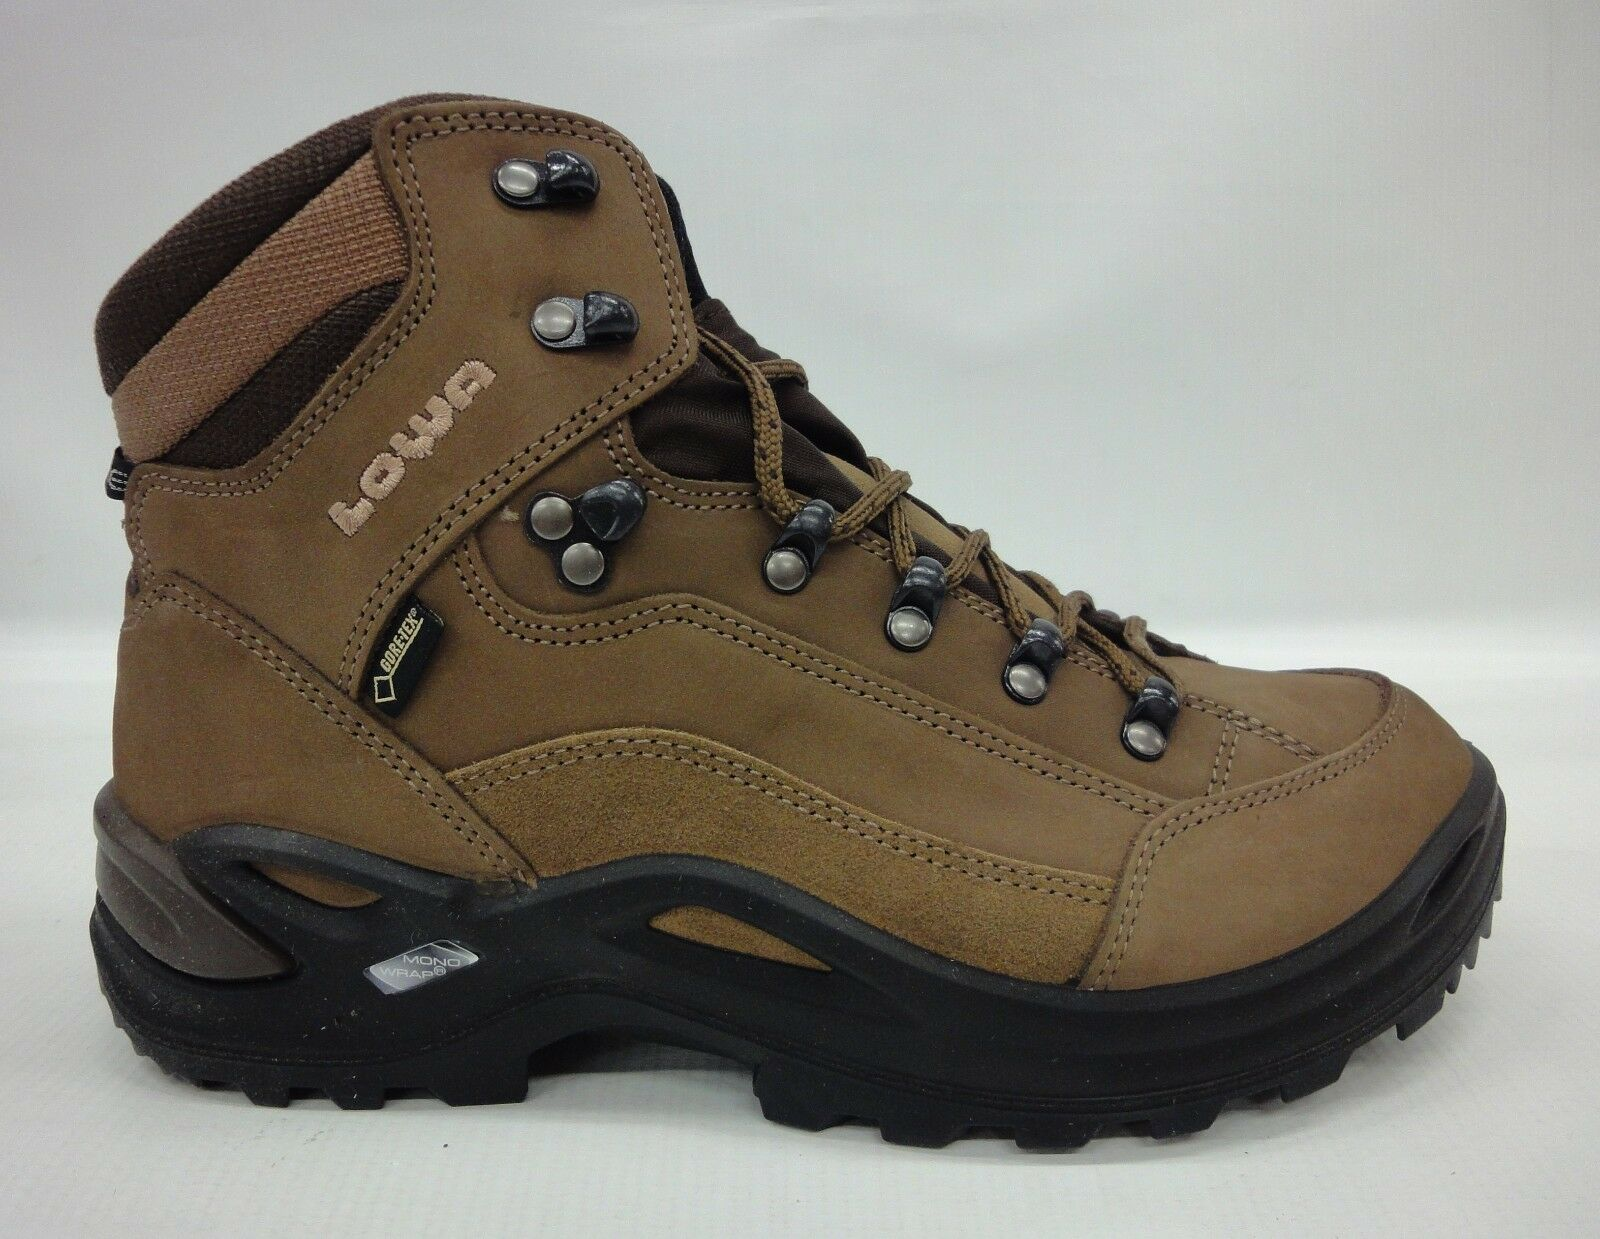 Lowa Womens Renegade GTX Mid Boots 320945 4655 Taupe Sepia Size 7